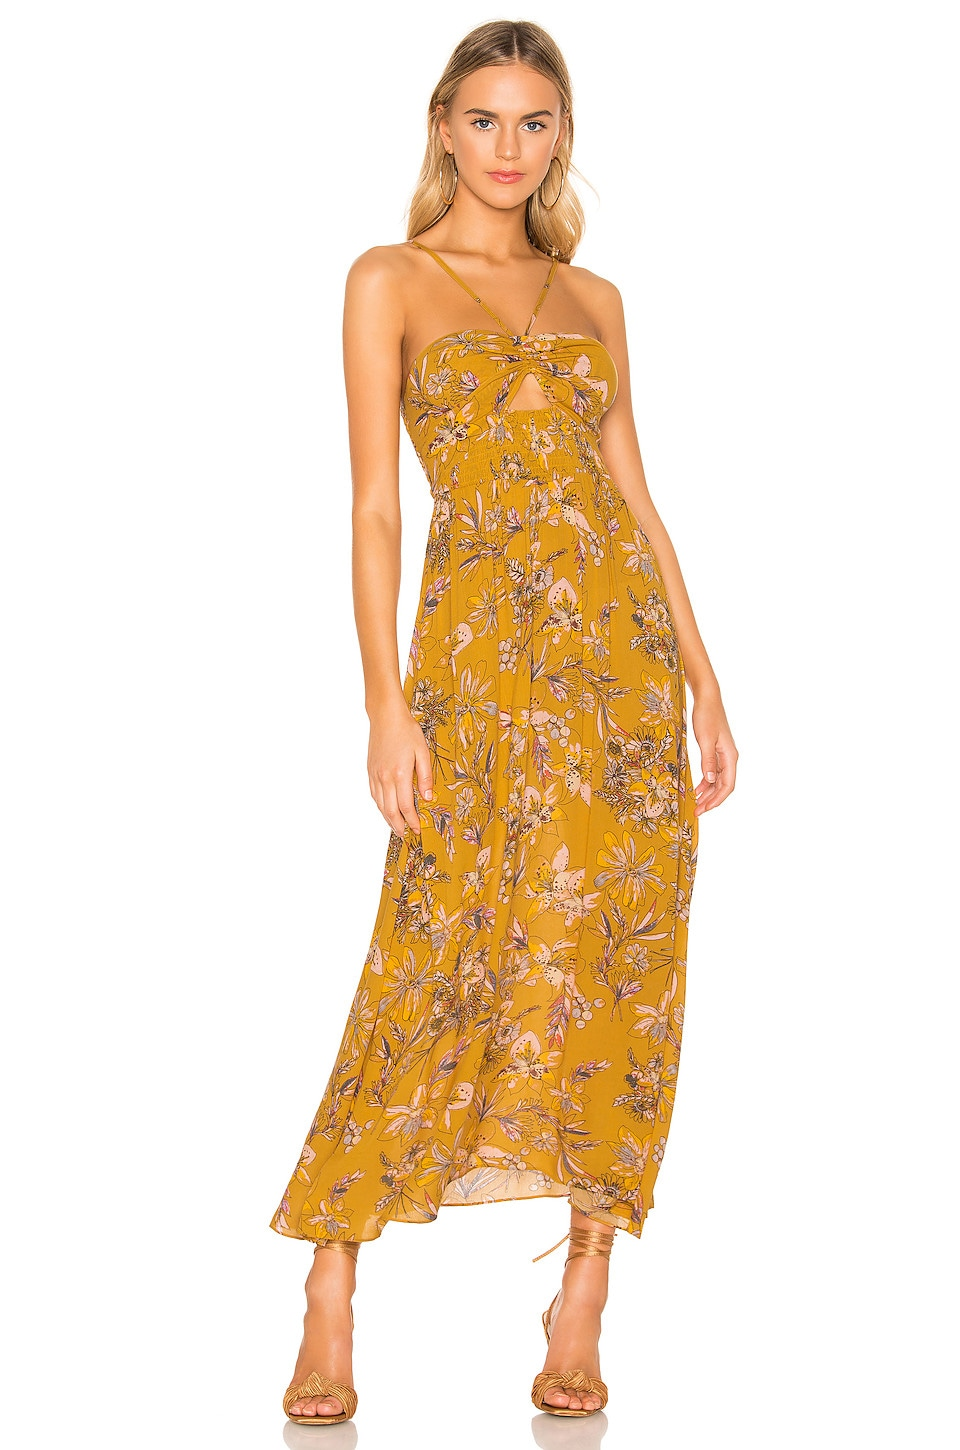 Free People Dresses FREE PEOPLE ONE STEP AHEAD MAXI DRESS IN MUSTARD.